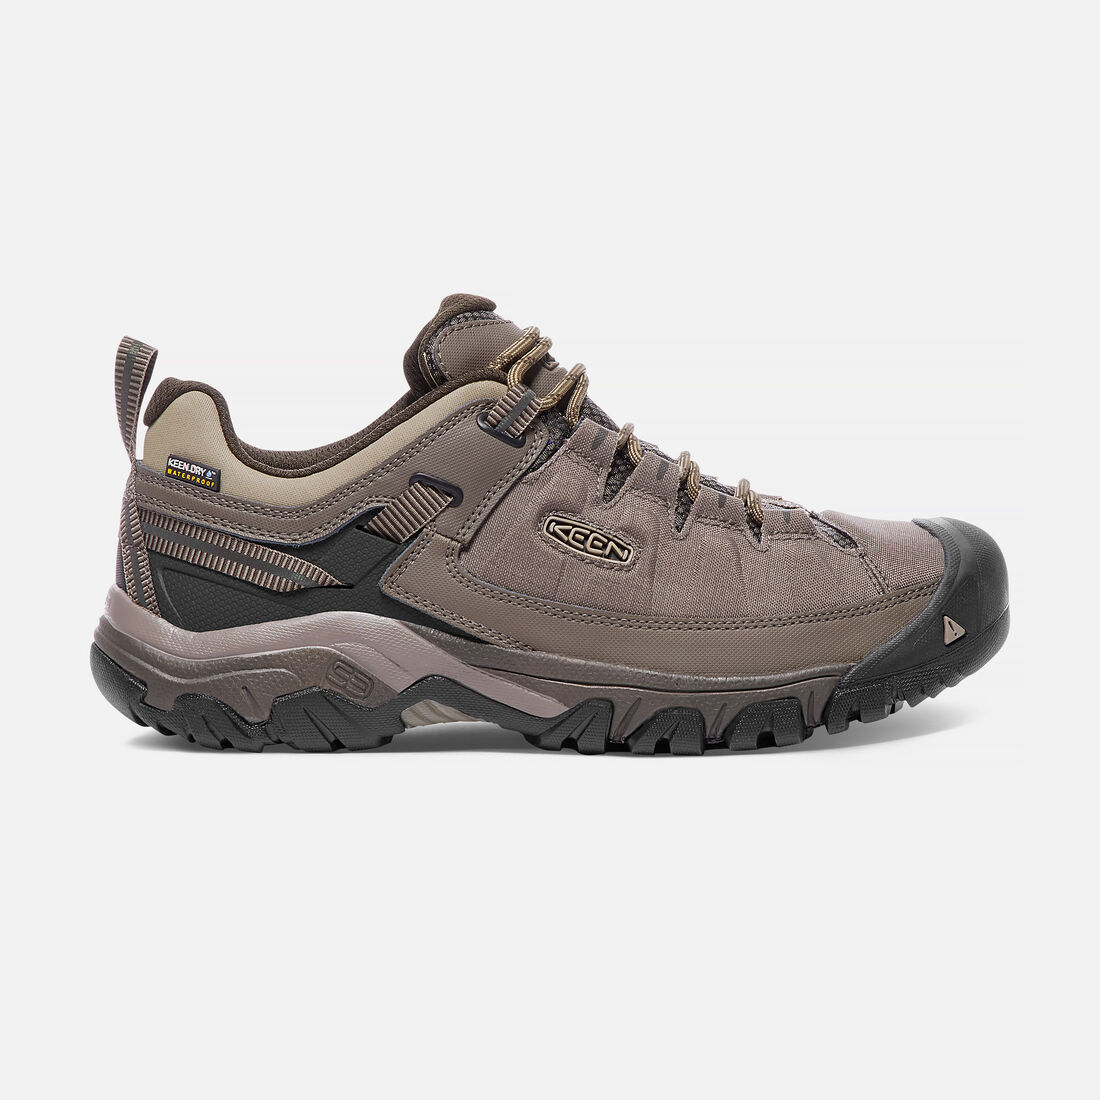 MEN'S TARGHEE EXP WATERPROOF HIKING SHOES in Bungee Cord/Brindle - large view.